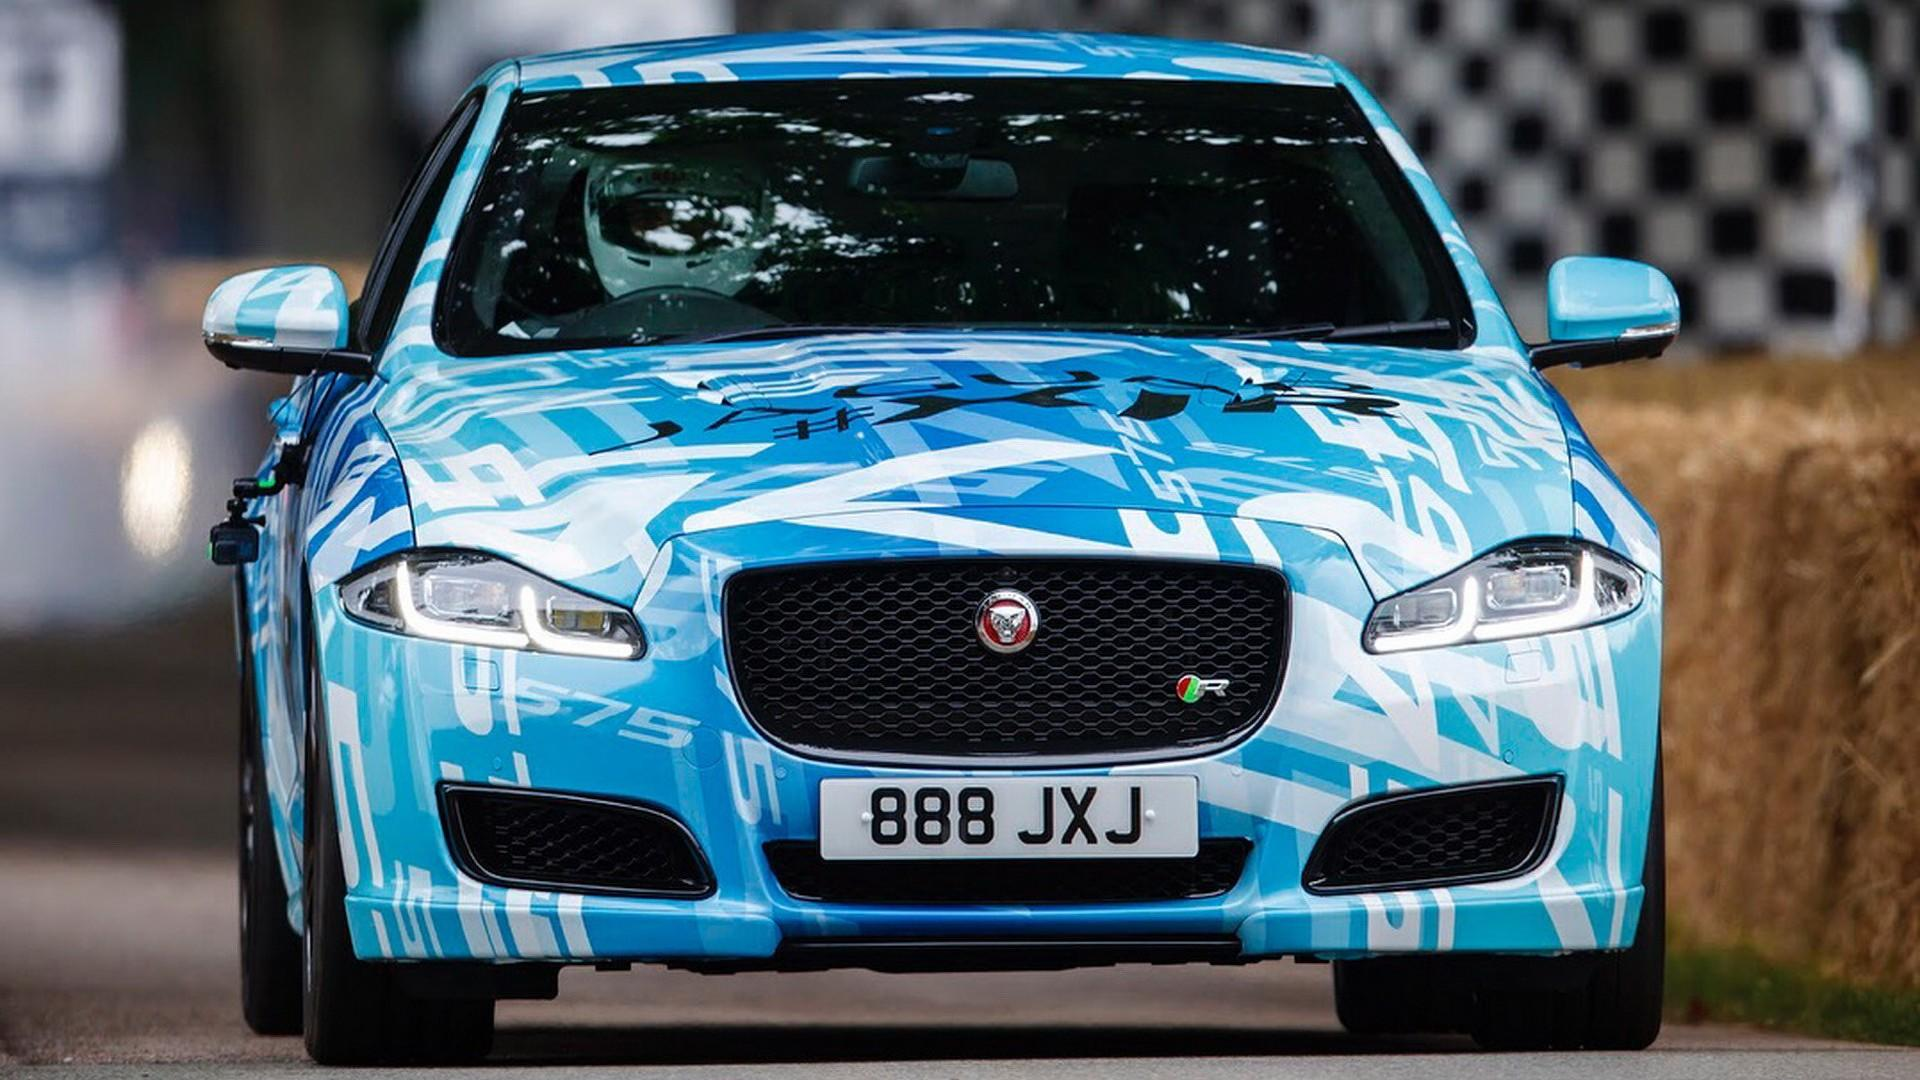 See The More Powerful Jaguar Xjr In Action Up Goodwood Hill Xj8 Fuel Filter Location